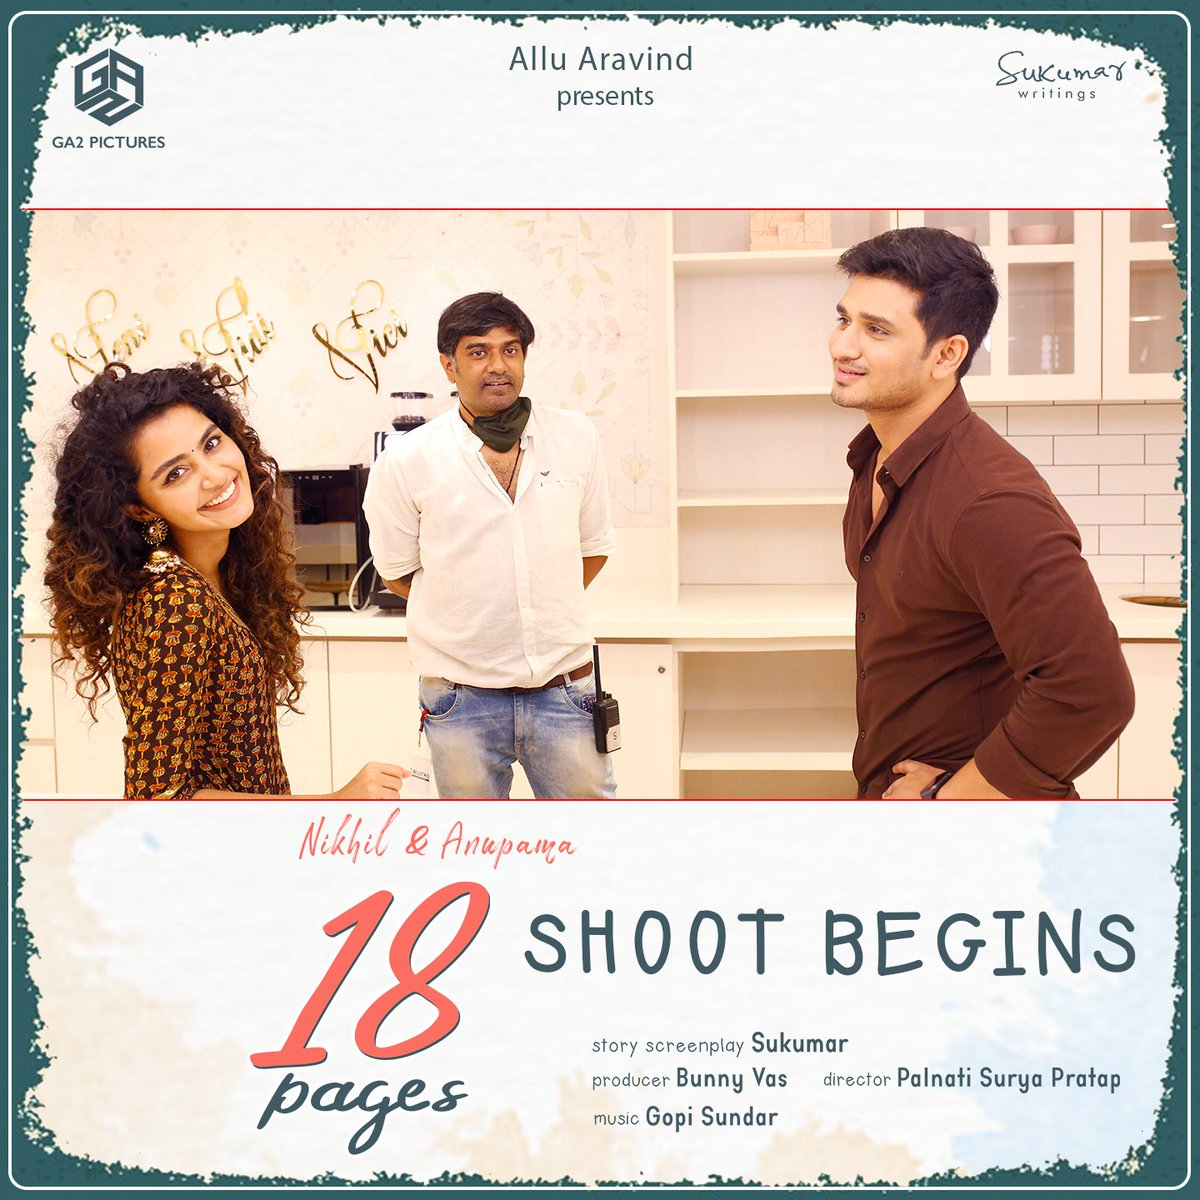 And we begin the shoot of our #18Pages 🎥📝 Send in your best wishes for the team 🧡  Here is a working still from the sets of #18PagesMovie 🤩  #AlluAravind @actor_Nikhil @anupamahere @dirsuryapratap @GopiSundarOffl #BunnyVas @raparthysaran @SukumarWritings